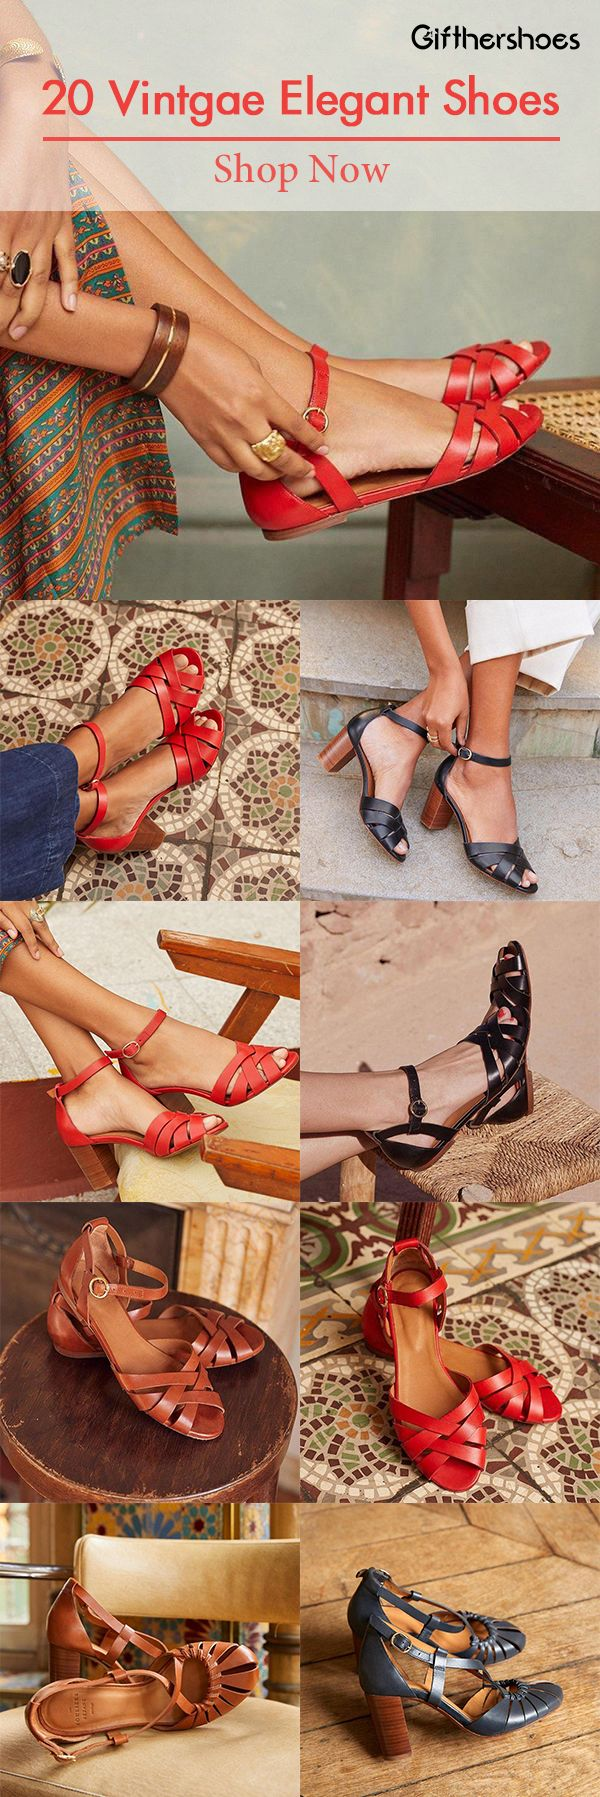 SHOP NOW>>20+ Vintage Elegant Shoes for Your Daily Outfits.Must Have It!